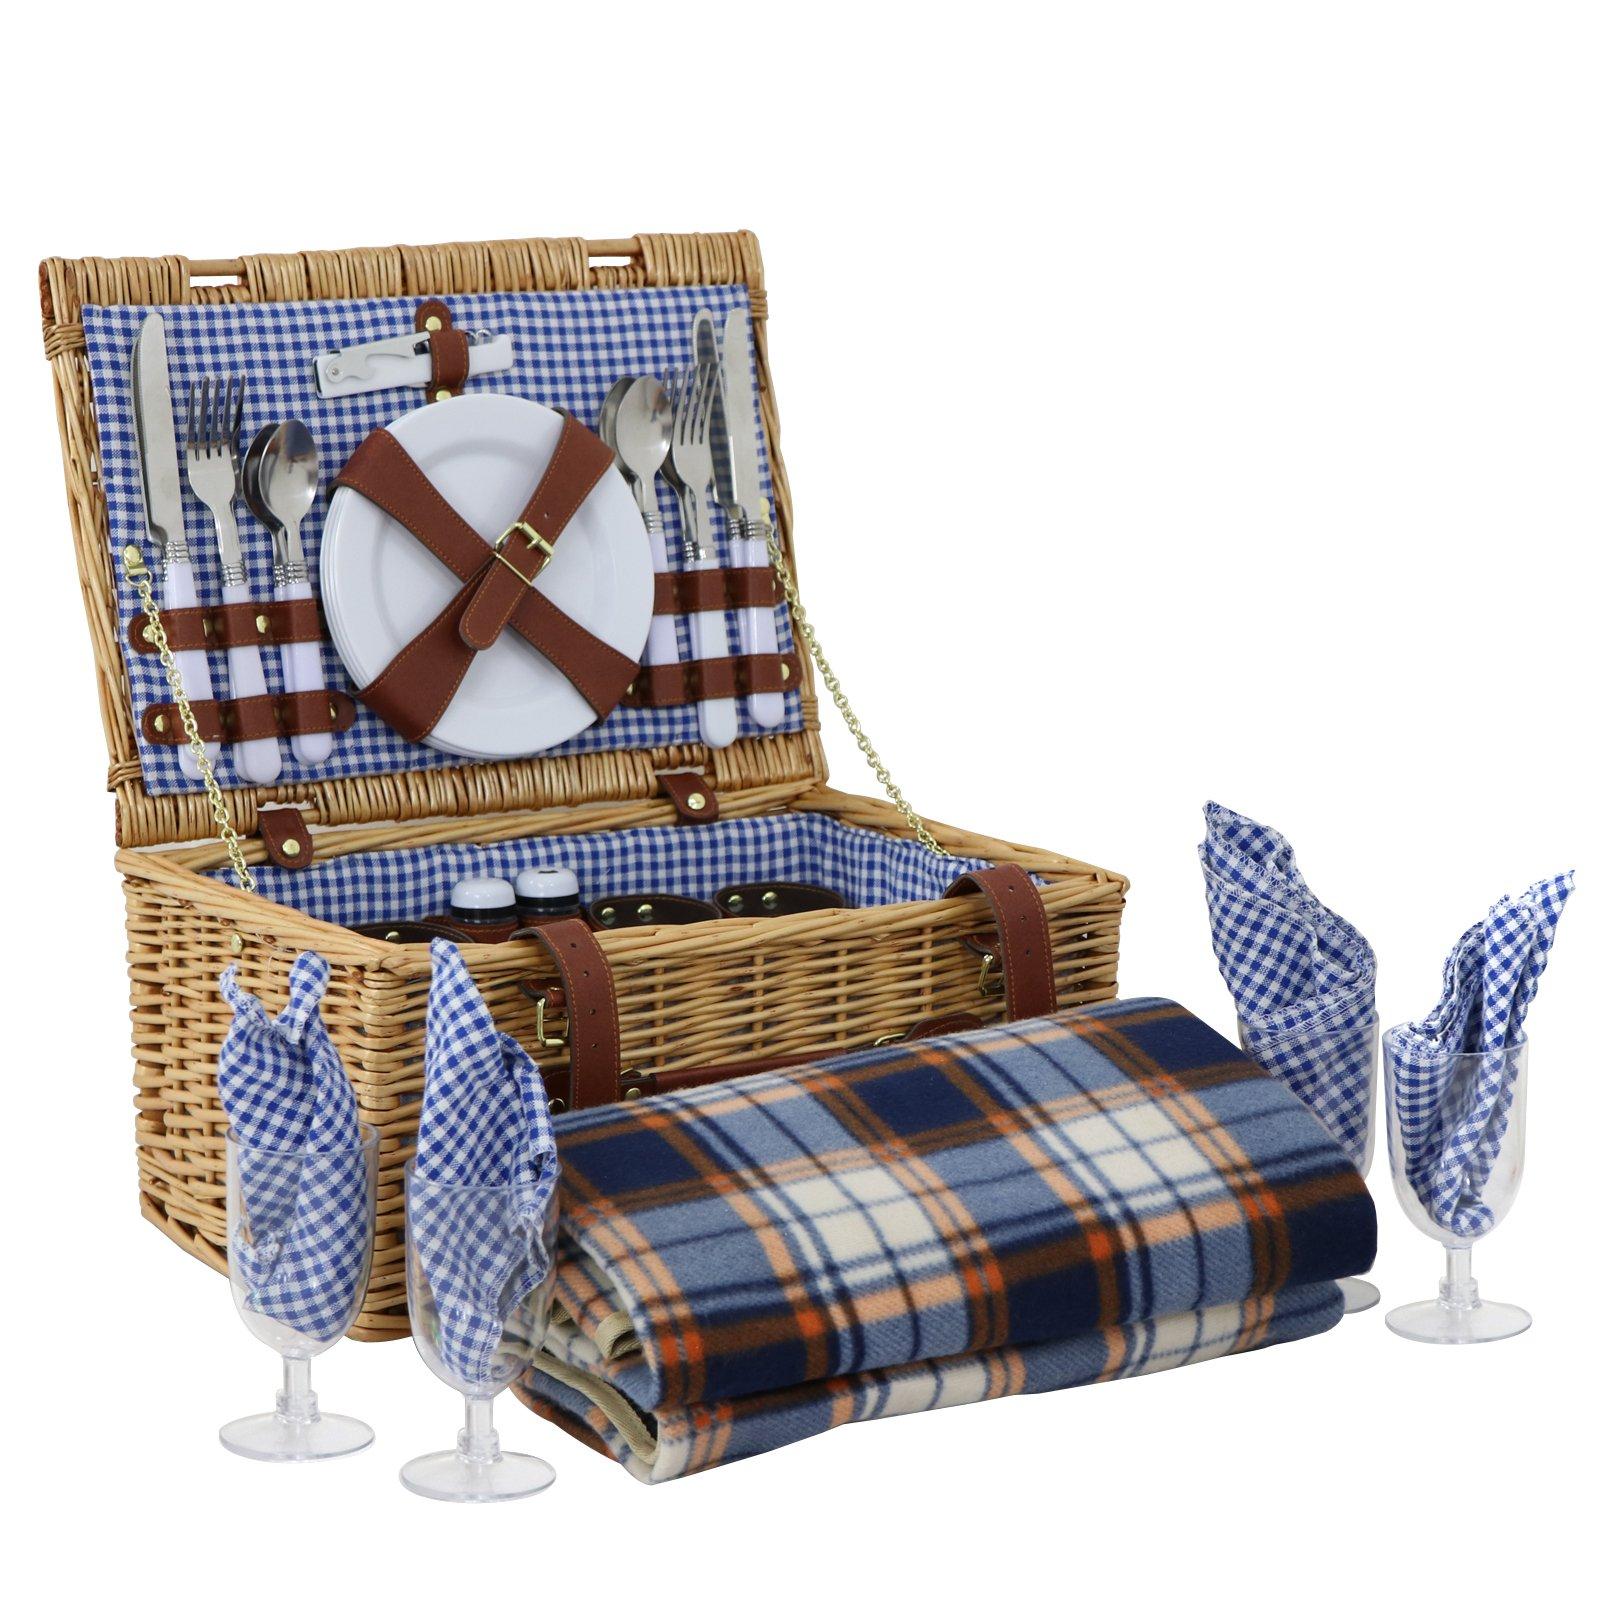 ZENY Wicker Picnic Basket 4 Person Wicker Hamper Set with Flatware, Plates and Wine Glasses Includes Tableware & Picnic Blanket (4 Person)